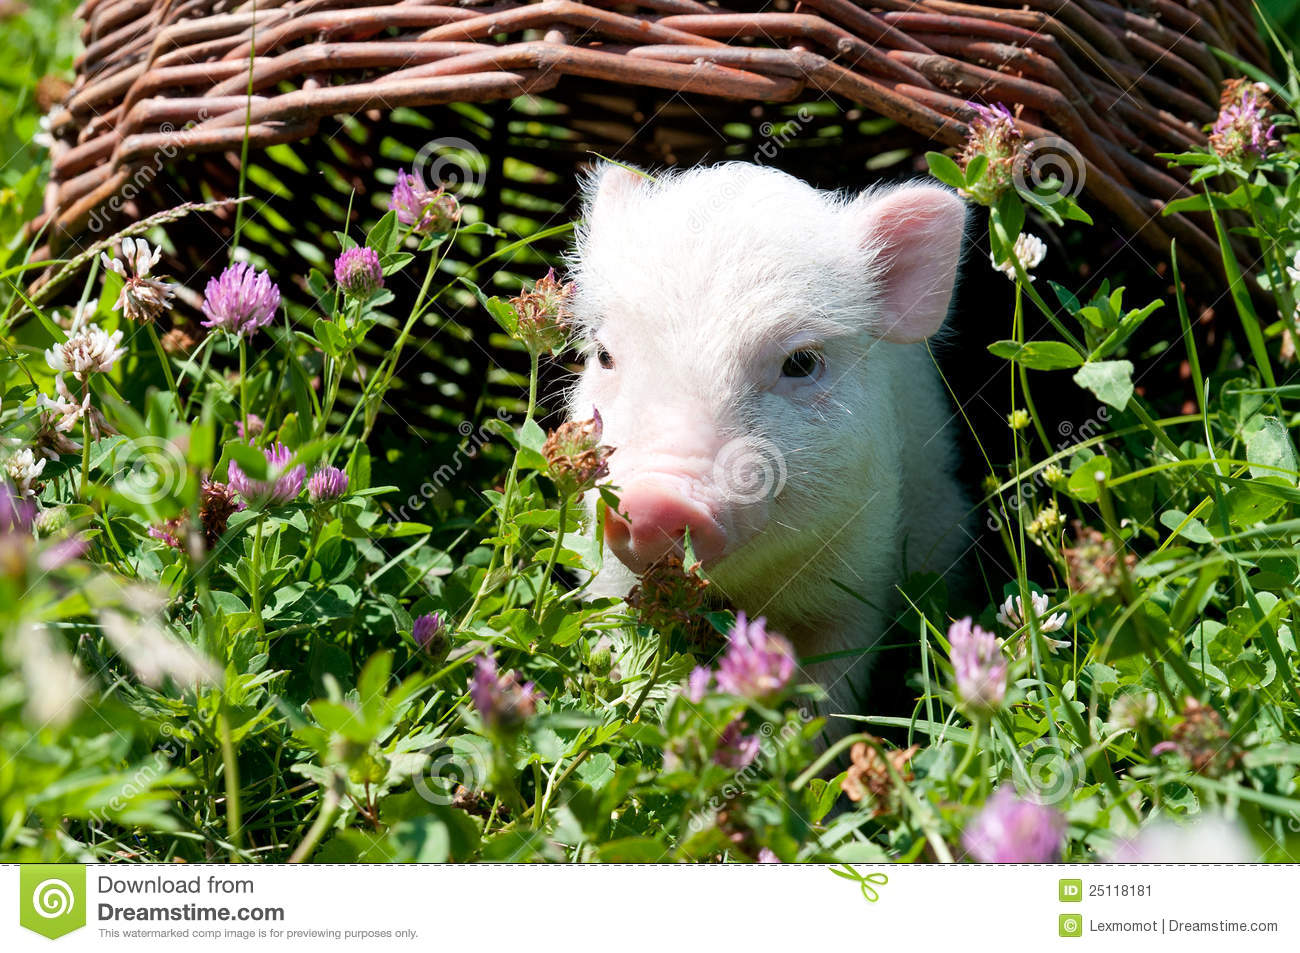 Vietnamese pig, eating grass on a sunny day